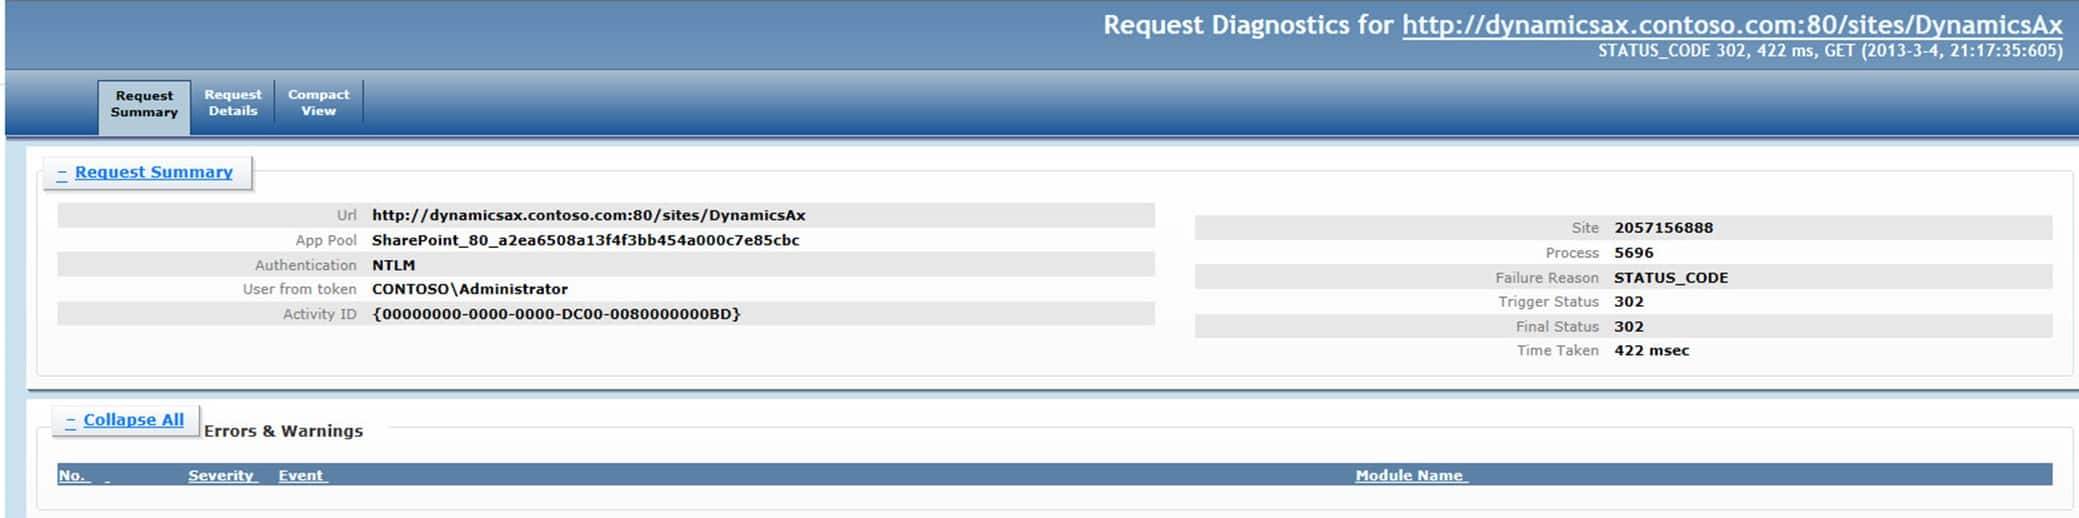 How to Troubleshoot Enterprise Portal Performance in